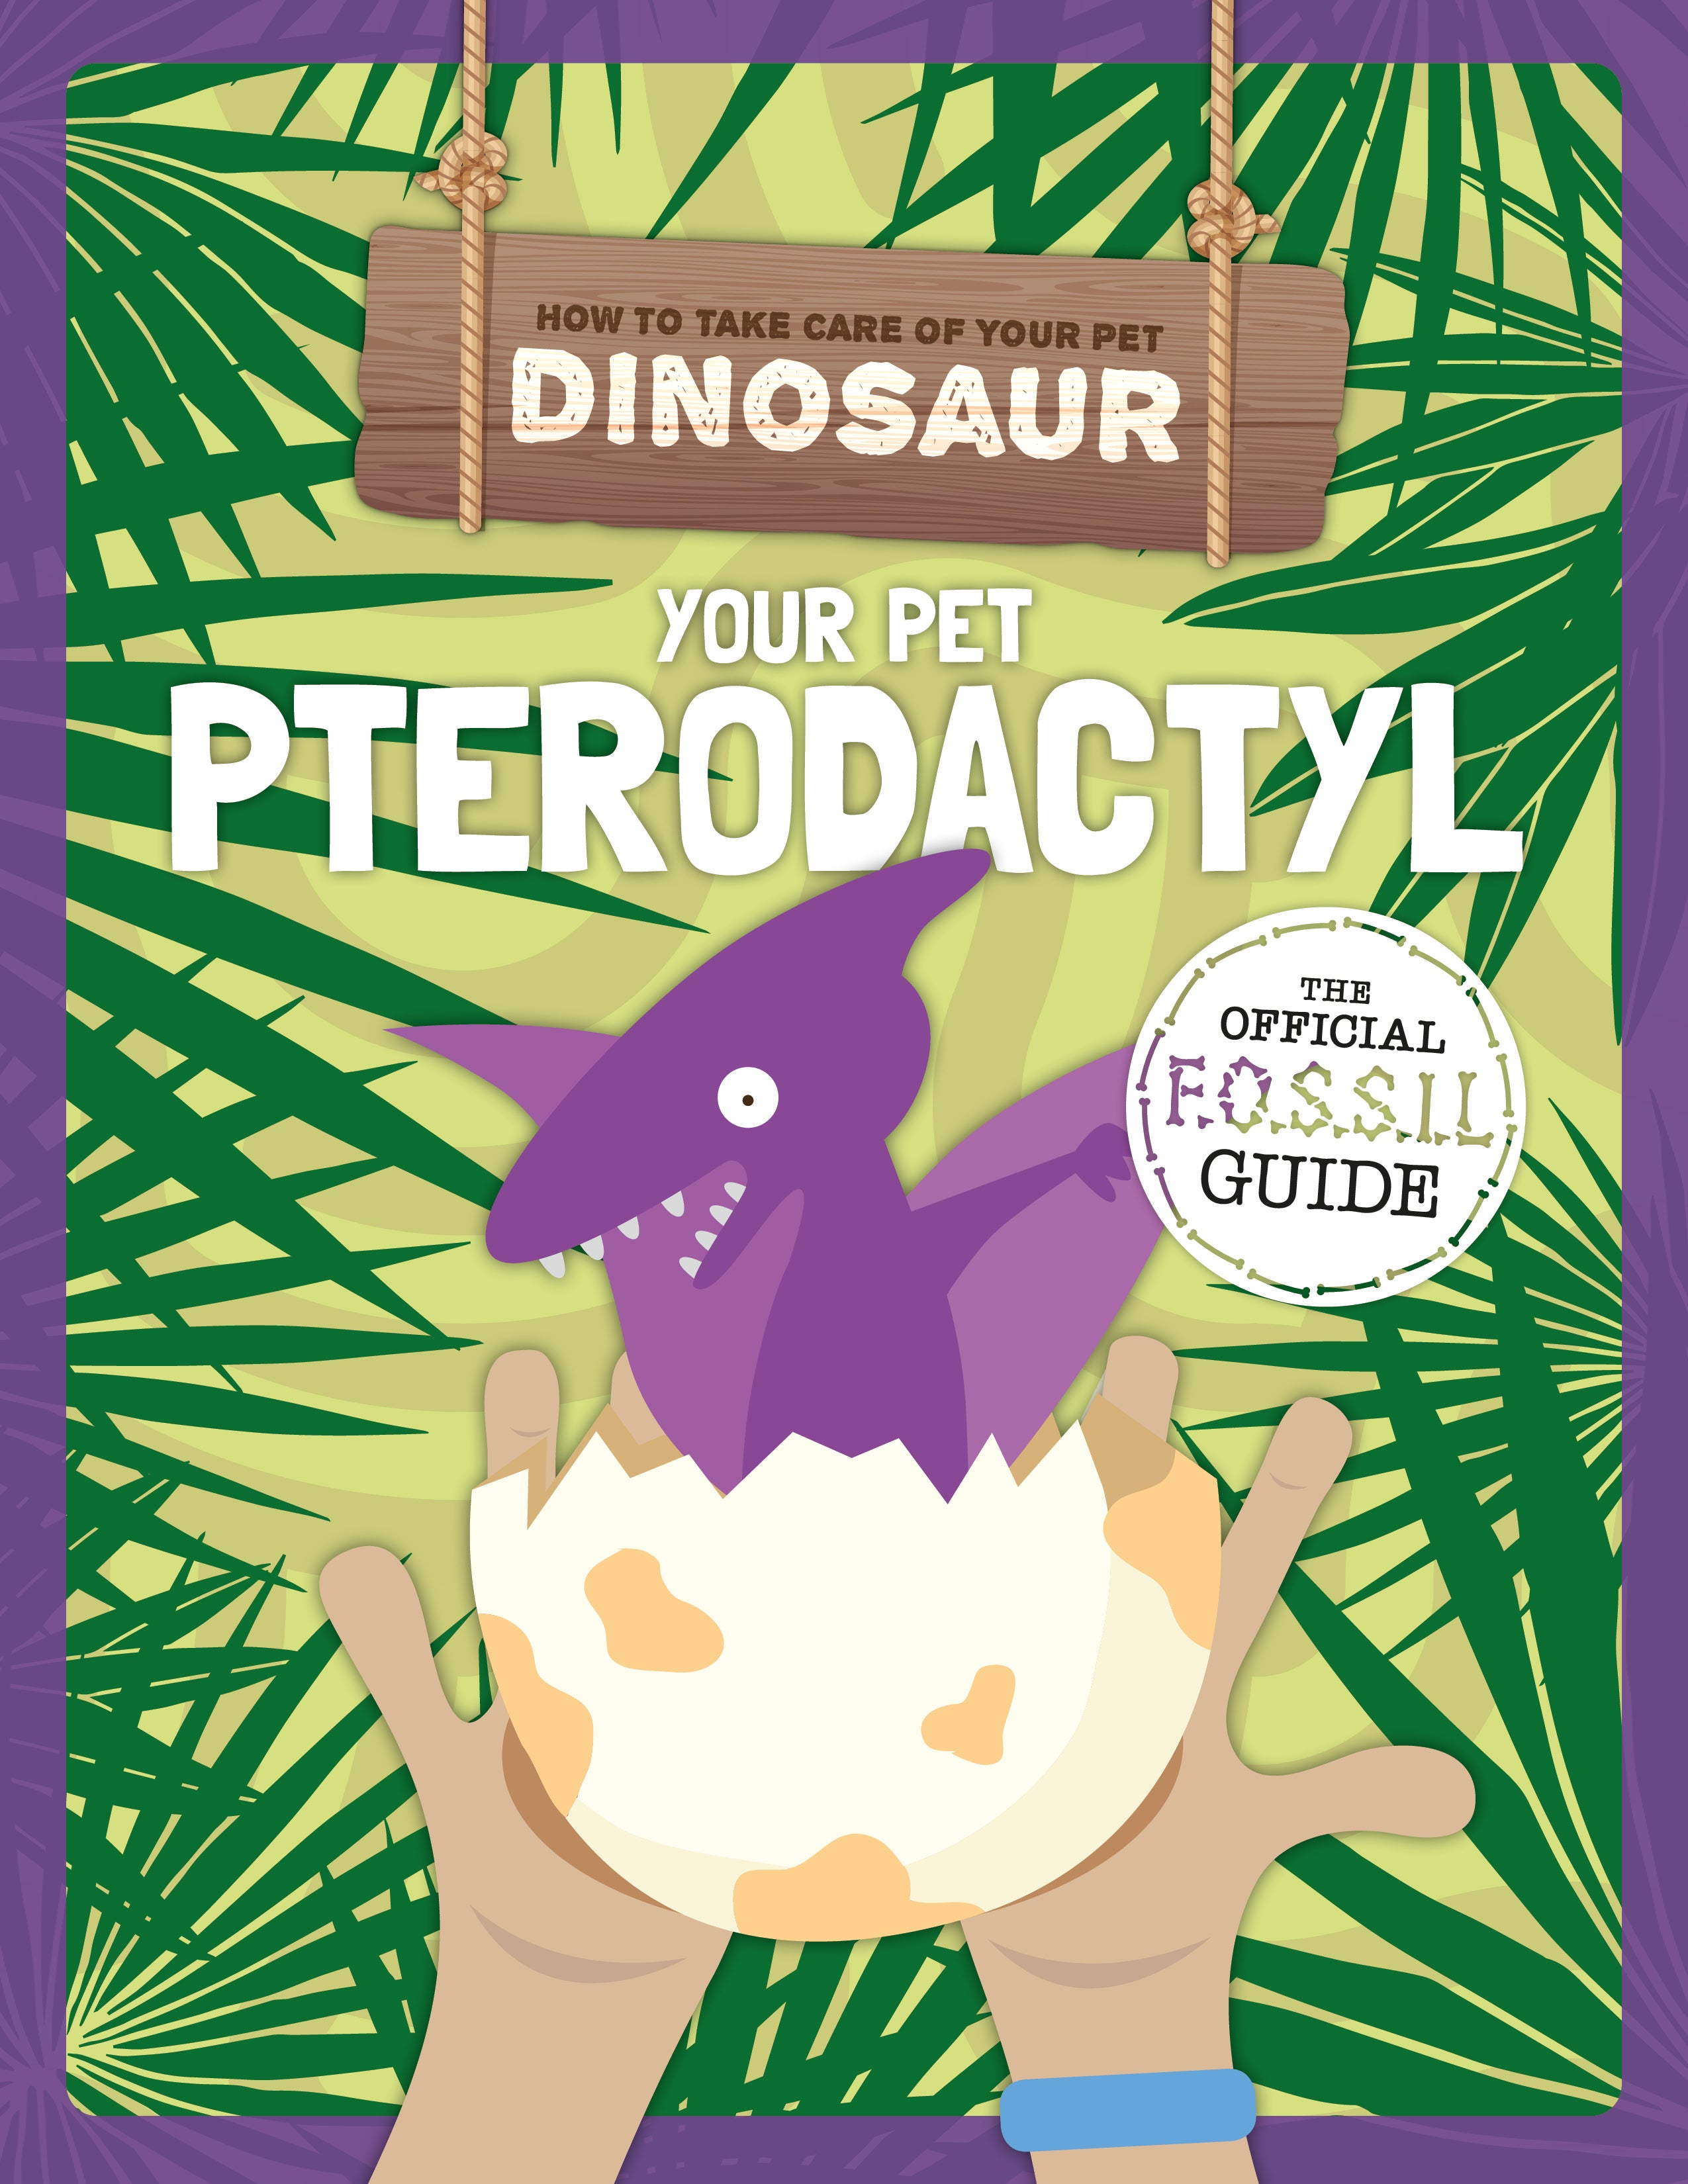 How to take care of your pet Pterodactyl ISBN 9781786374844